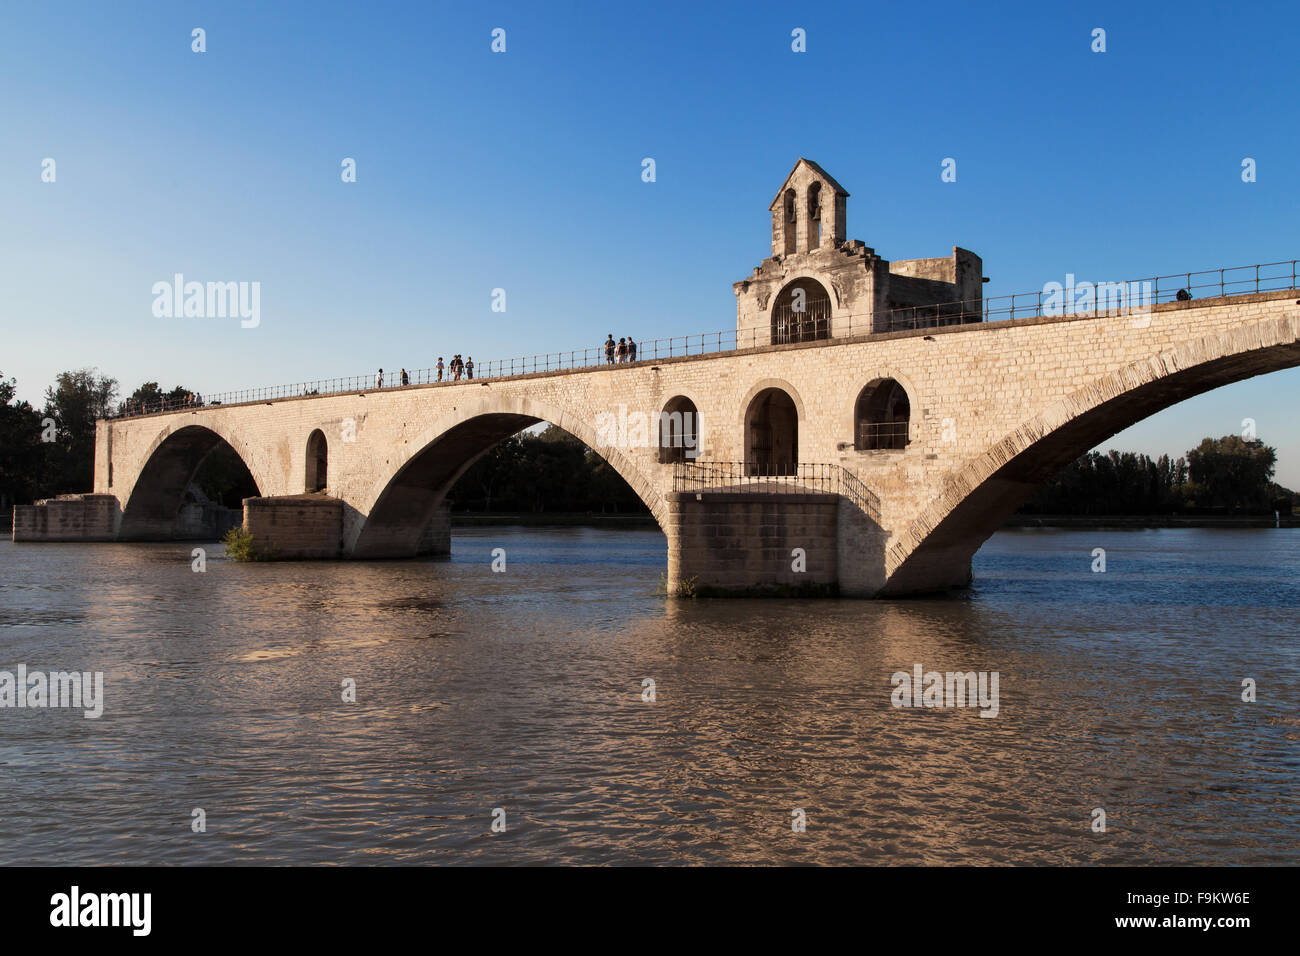 St Benezet Bridge over the Rhone river in Avignon, France. - Stock Image